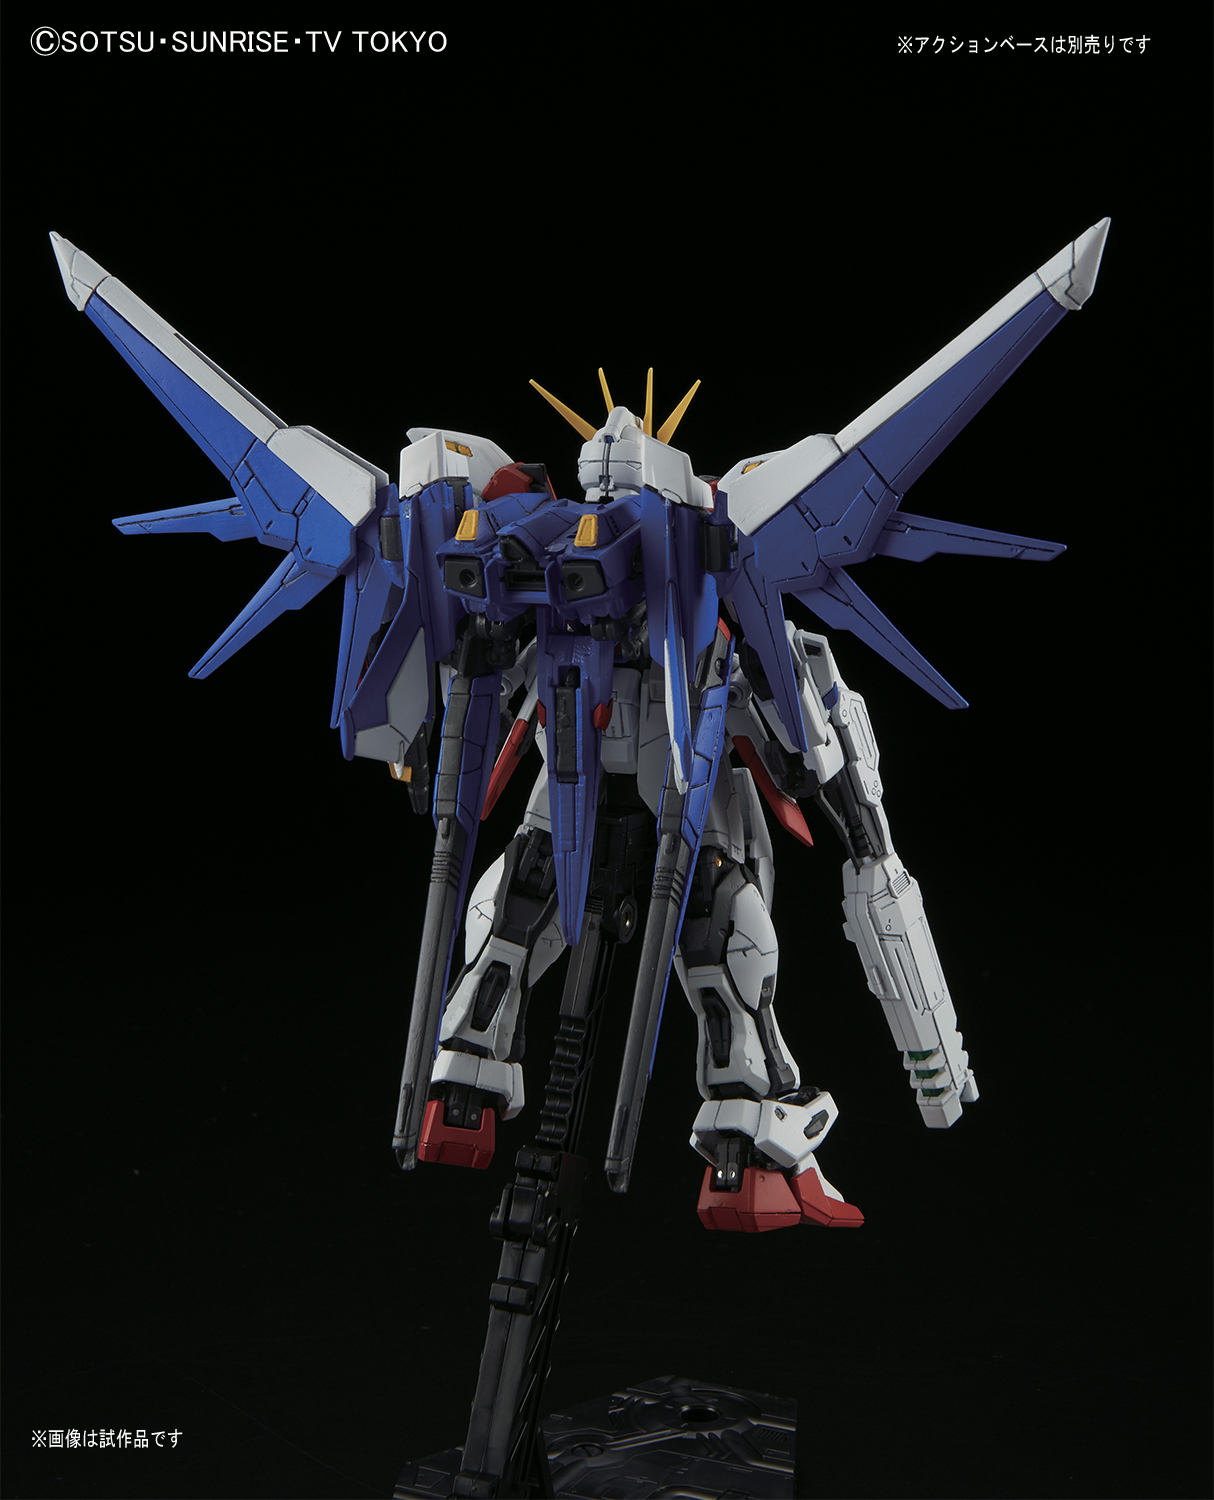 rg_build_strike_04.jpg